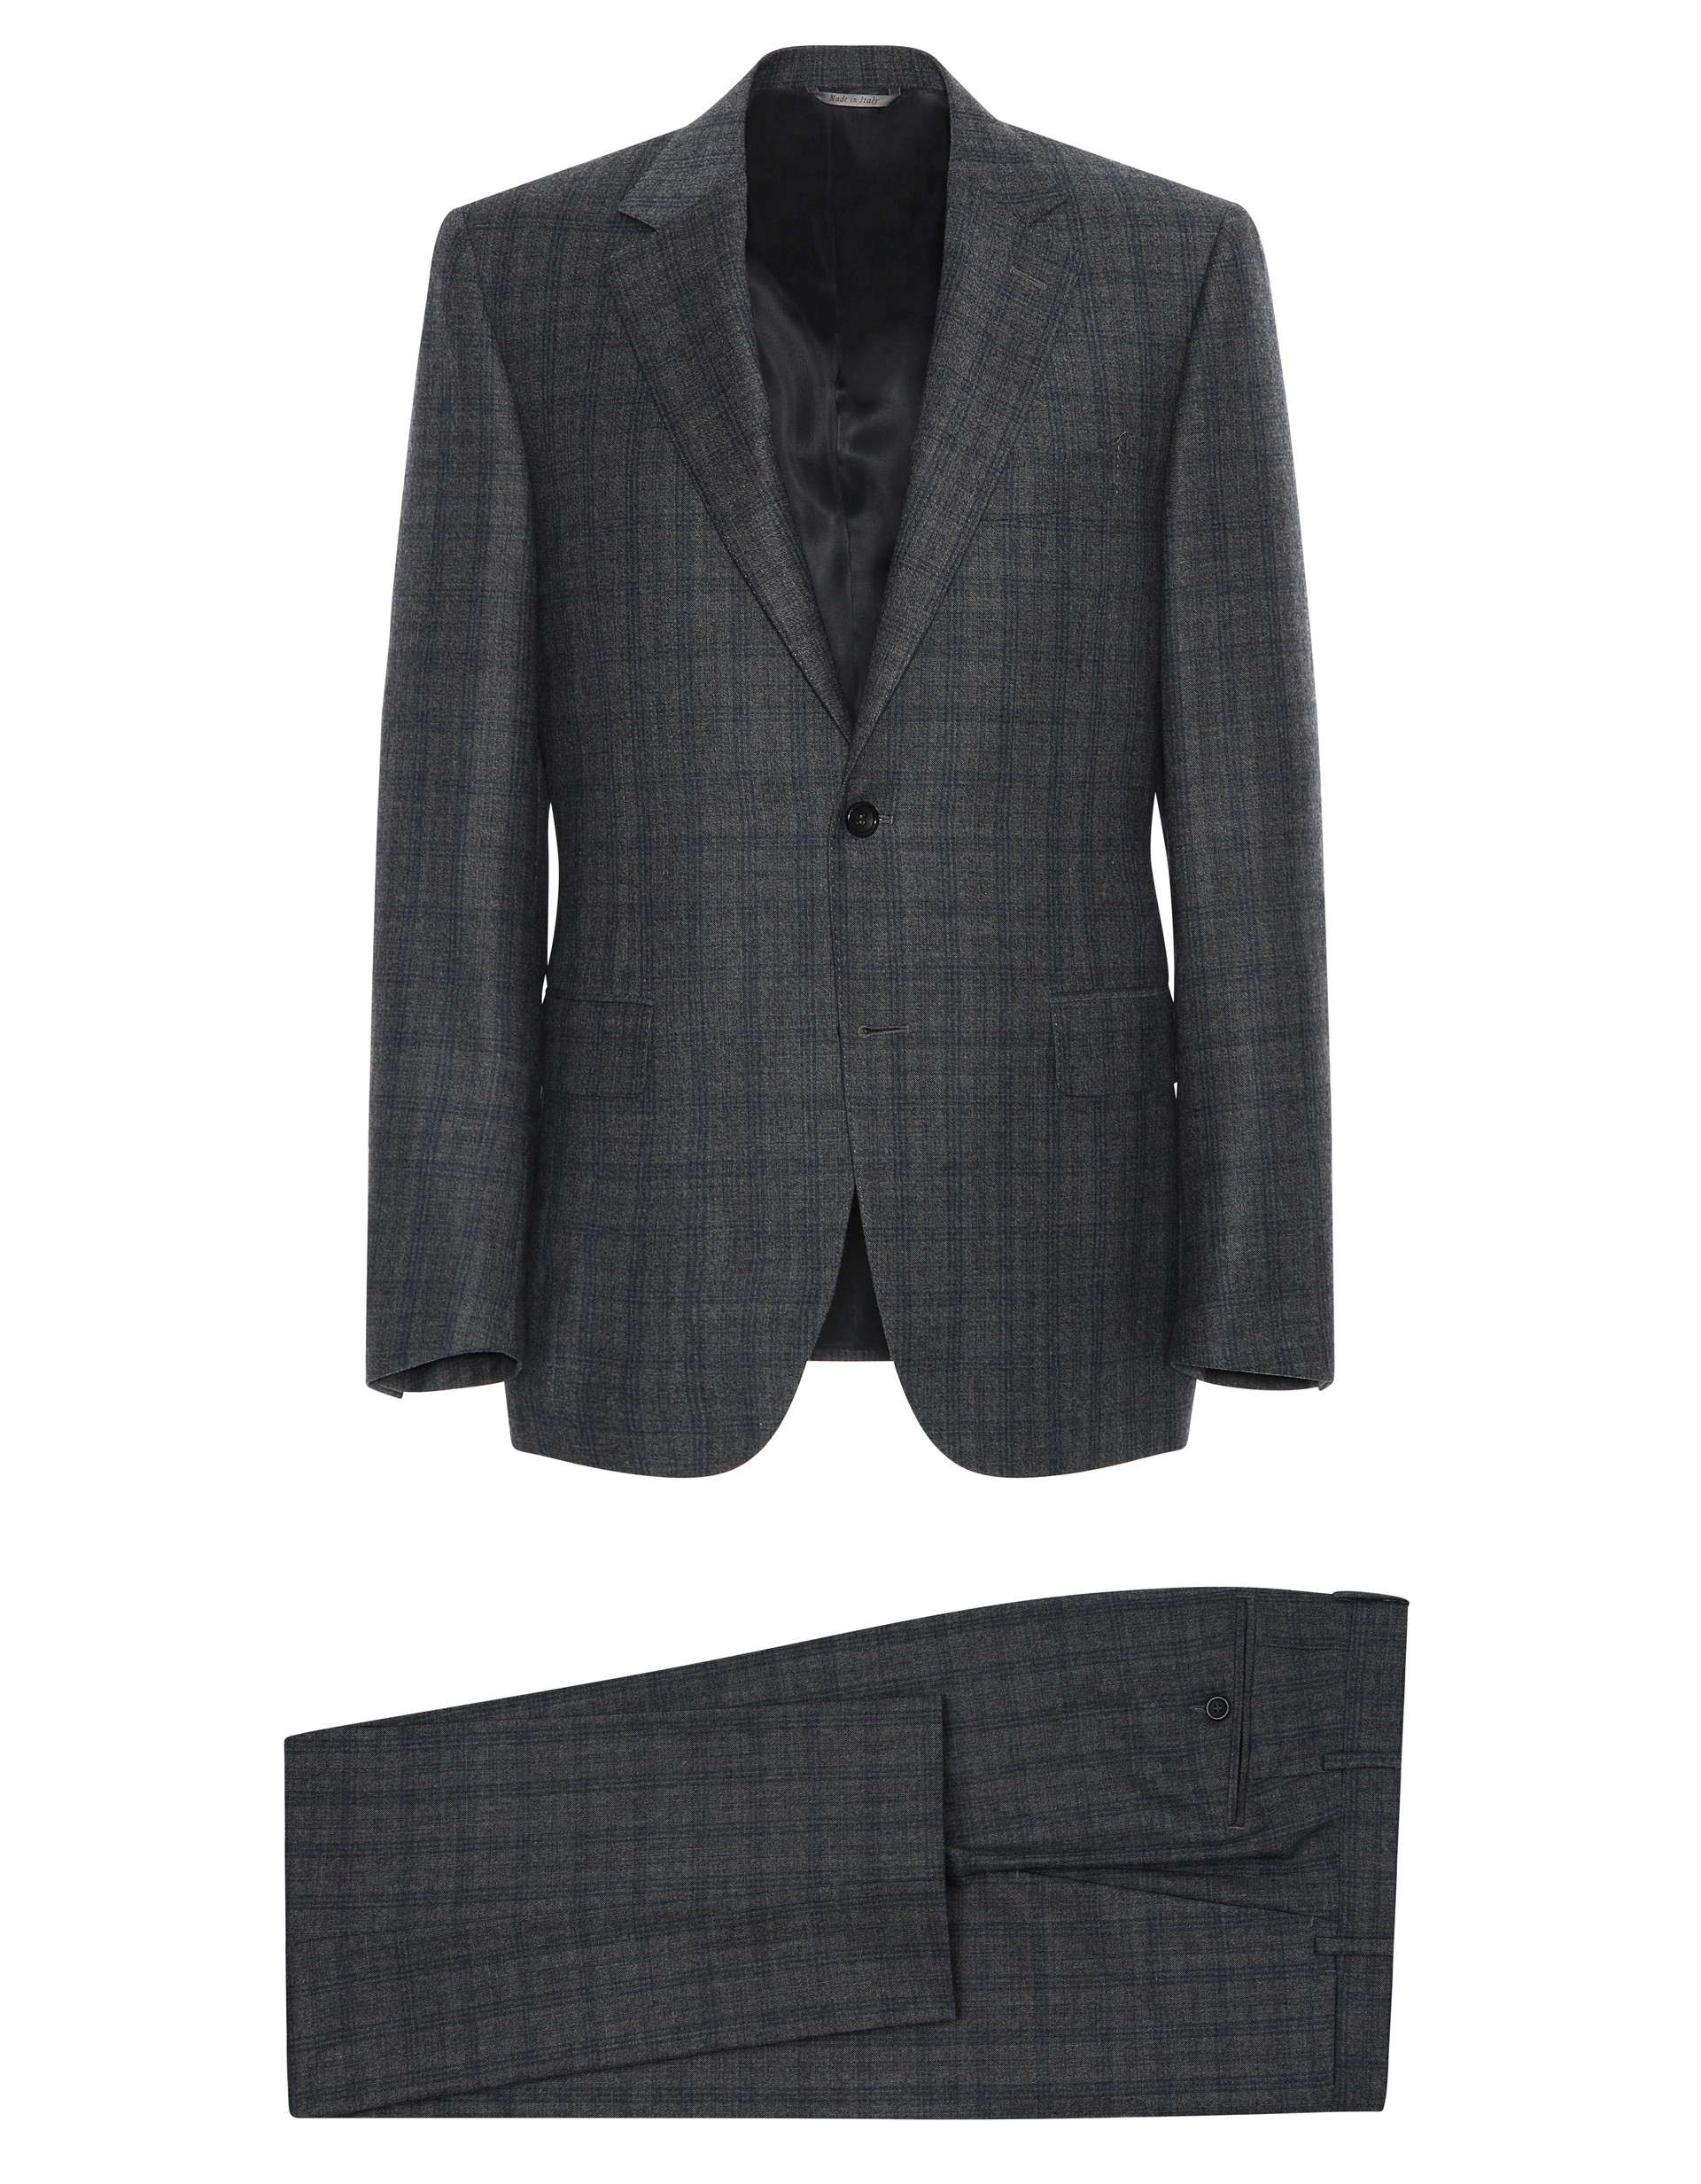 GRAY LIGHTWEIGHT WOOL FLANNEL CAPRI SUIT WITH BLUE PRINCE OF WALES CHECK